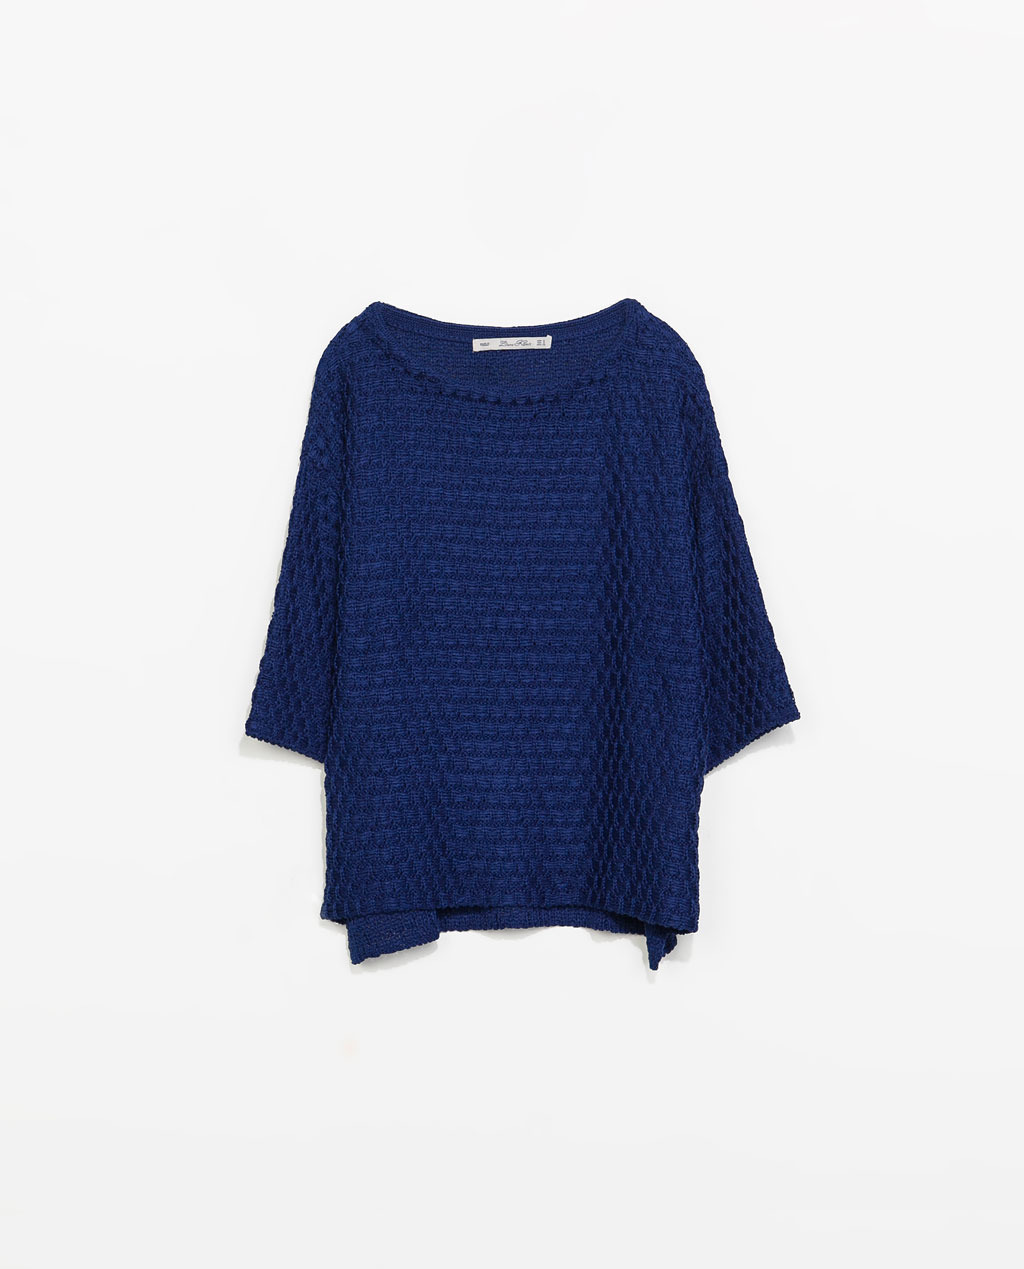 Detailed Knit Sweater - neckline: slash/boat neckline; pattern: plain; style: standard; predominant colour: navy; occasions: casual, work, creative work; length: standard; fibres: acrylic - 100%; fit: loose; sleeve length: 3/4 length; sleeve style: standard; texture group: knits/crochet; pattern type: knitted - other; season: s/s 2014